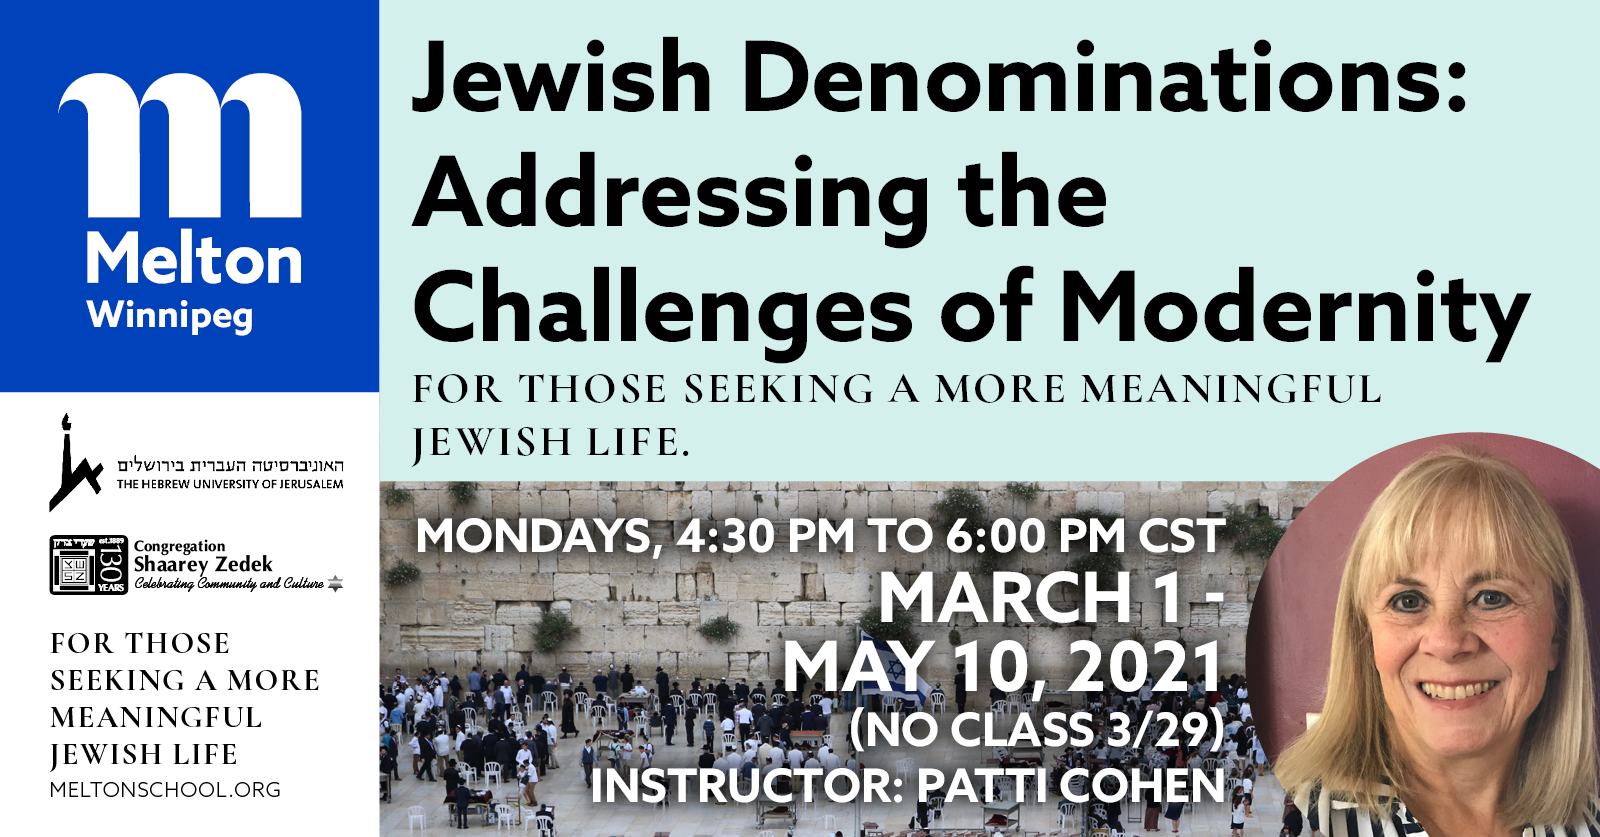 Banner Image for Melton -- Jewish Denominations Course: Addressing the Challenges of Modernity